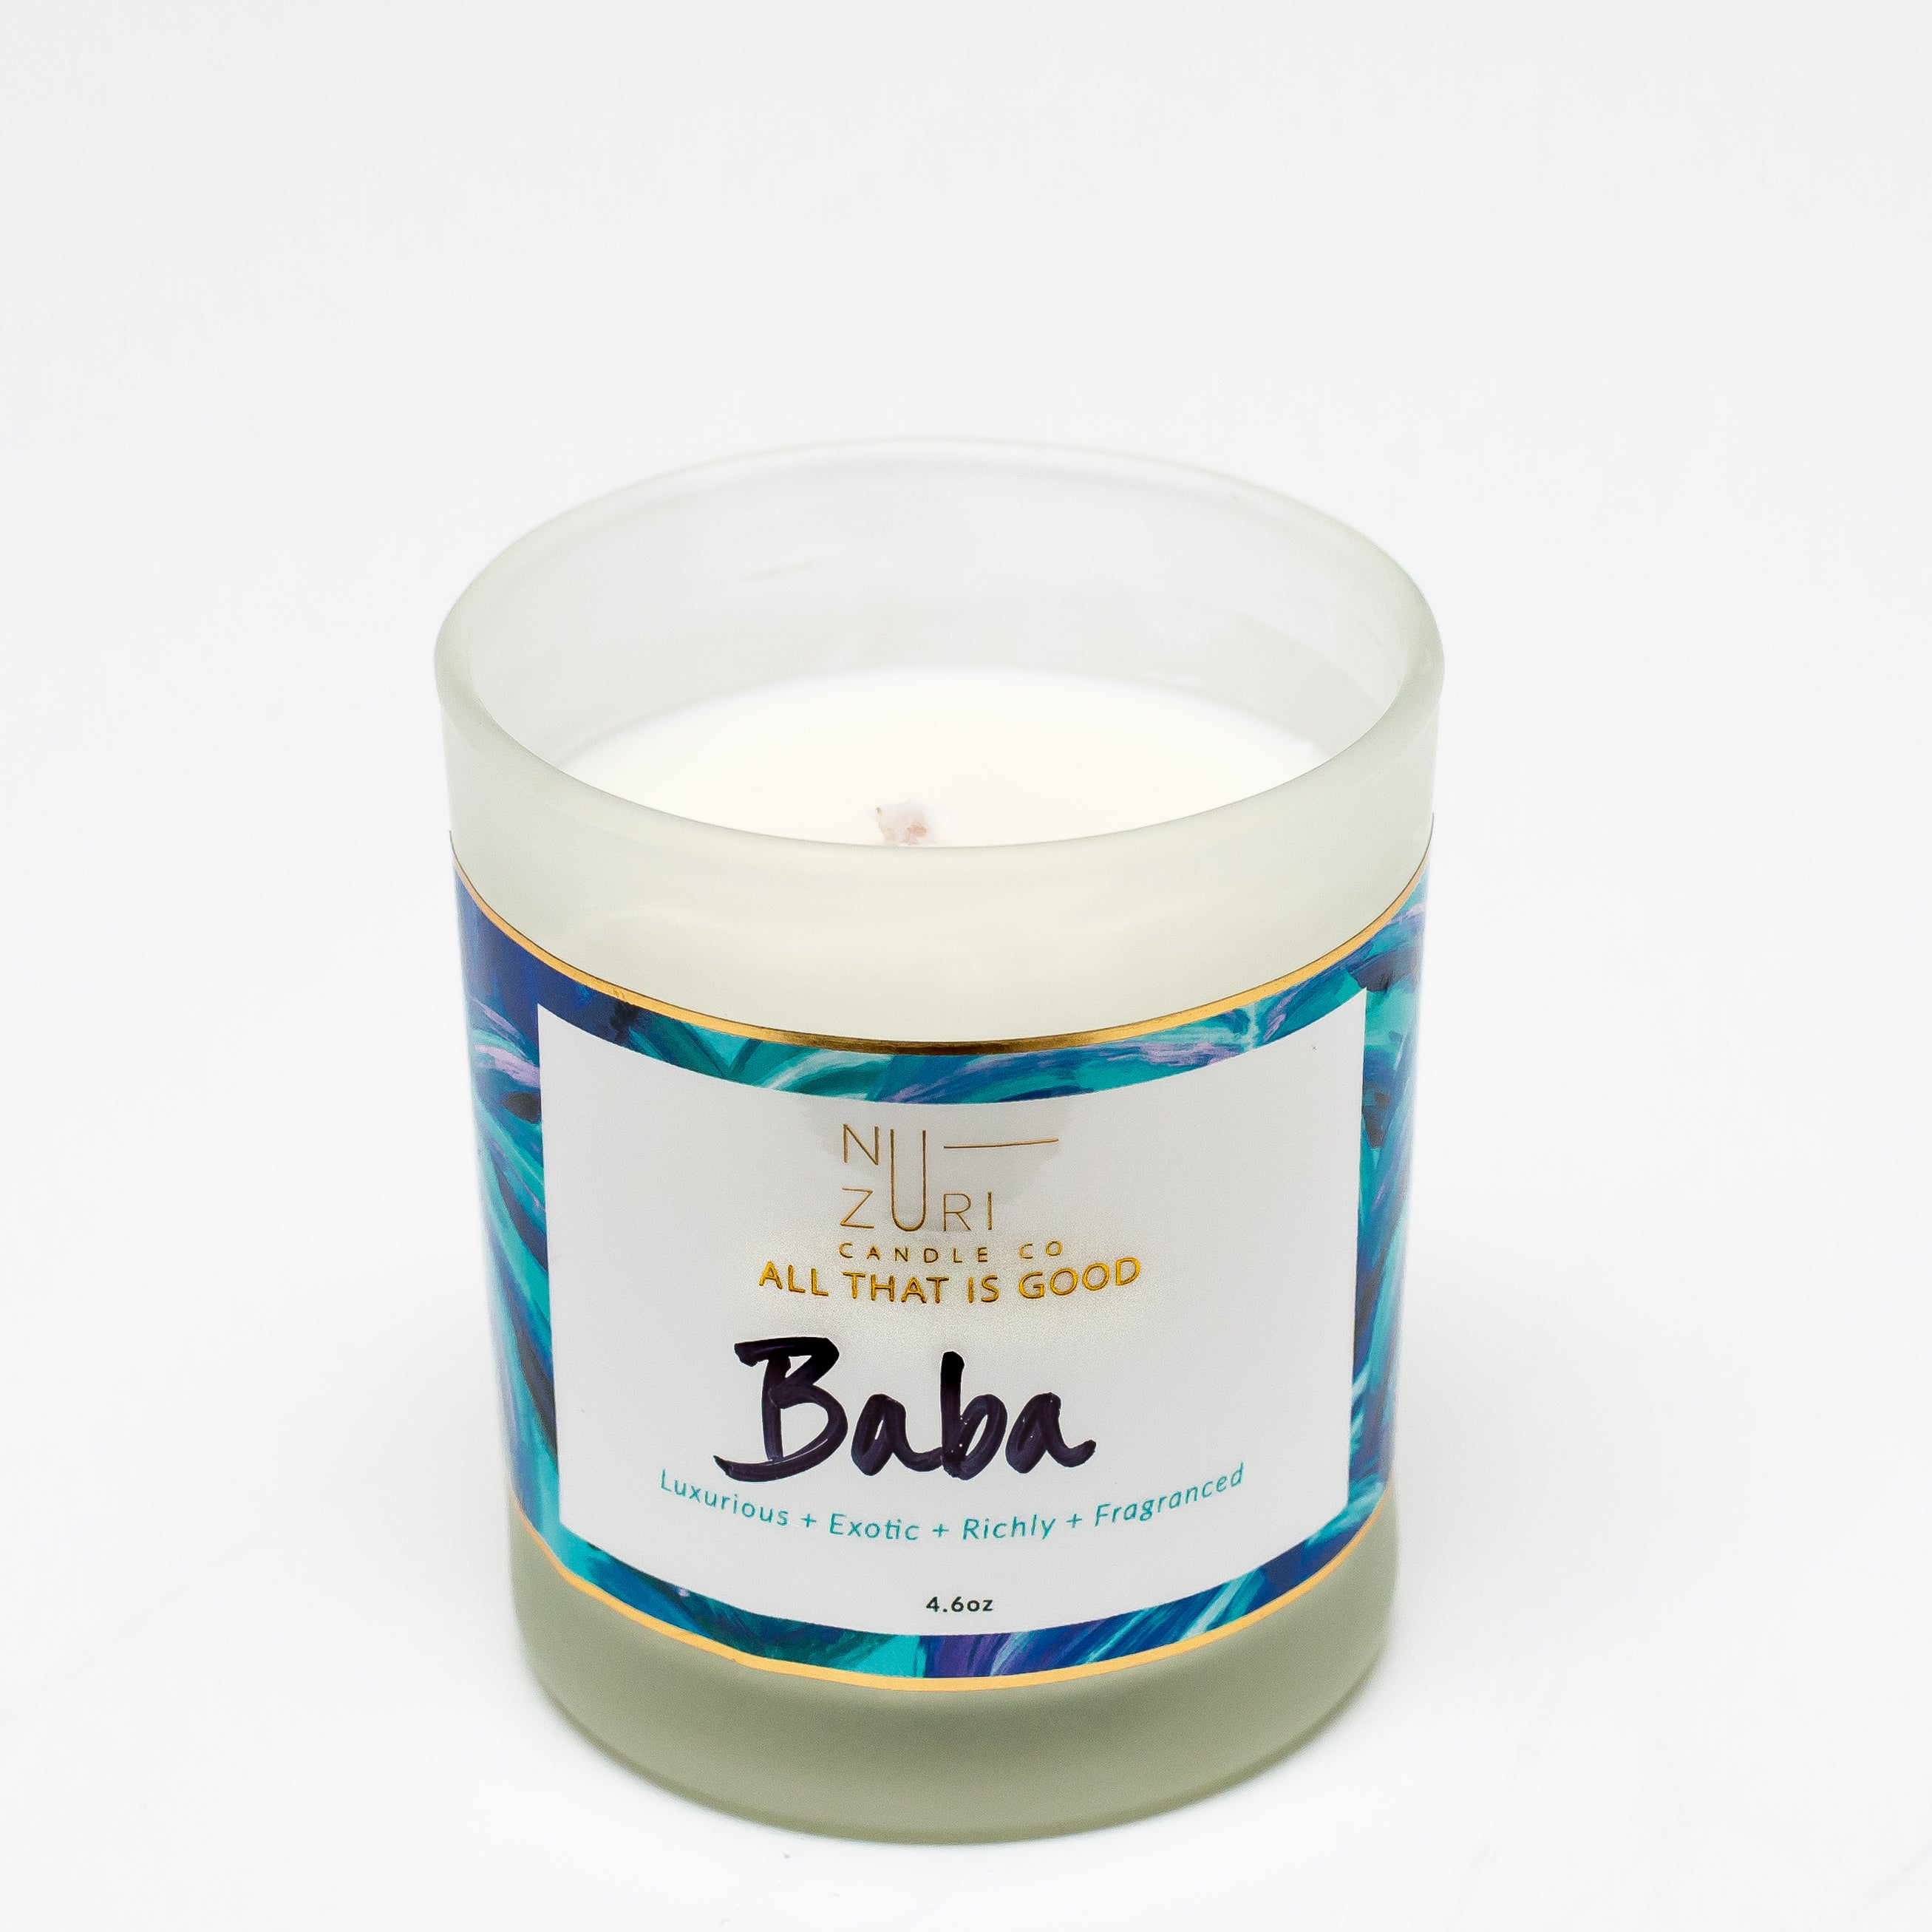 Baba Scented Candle